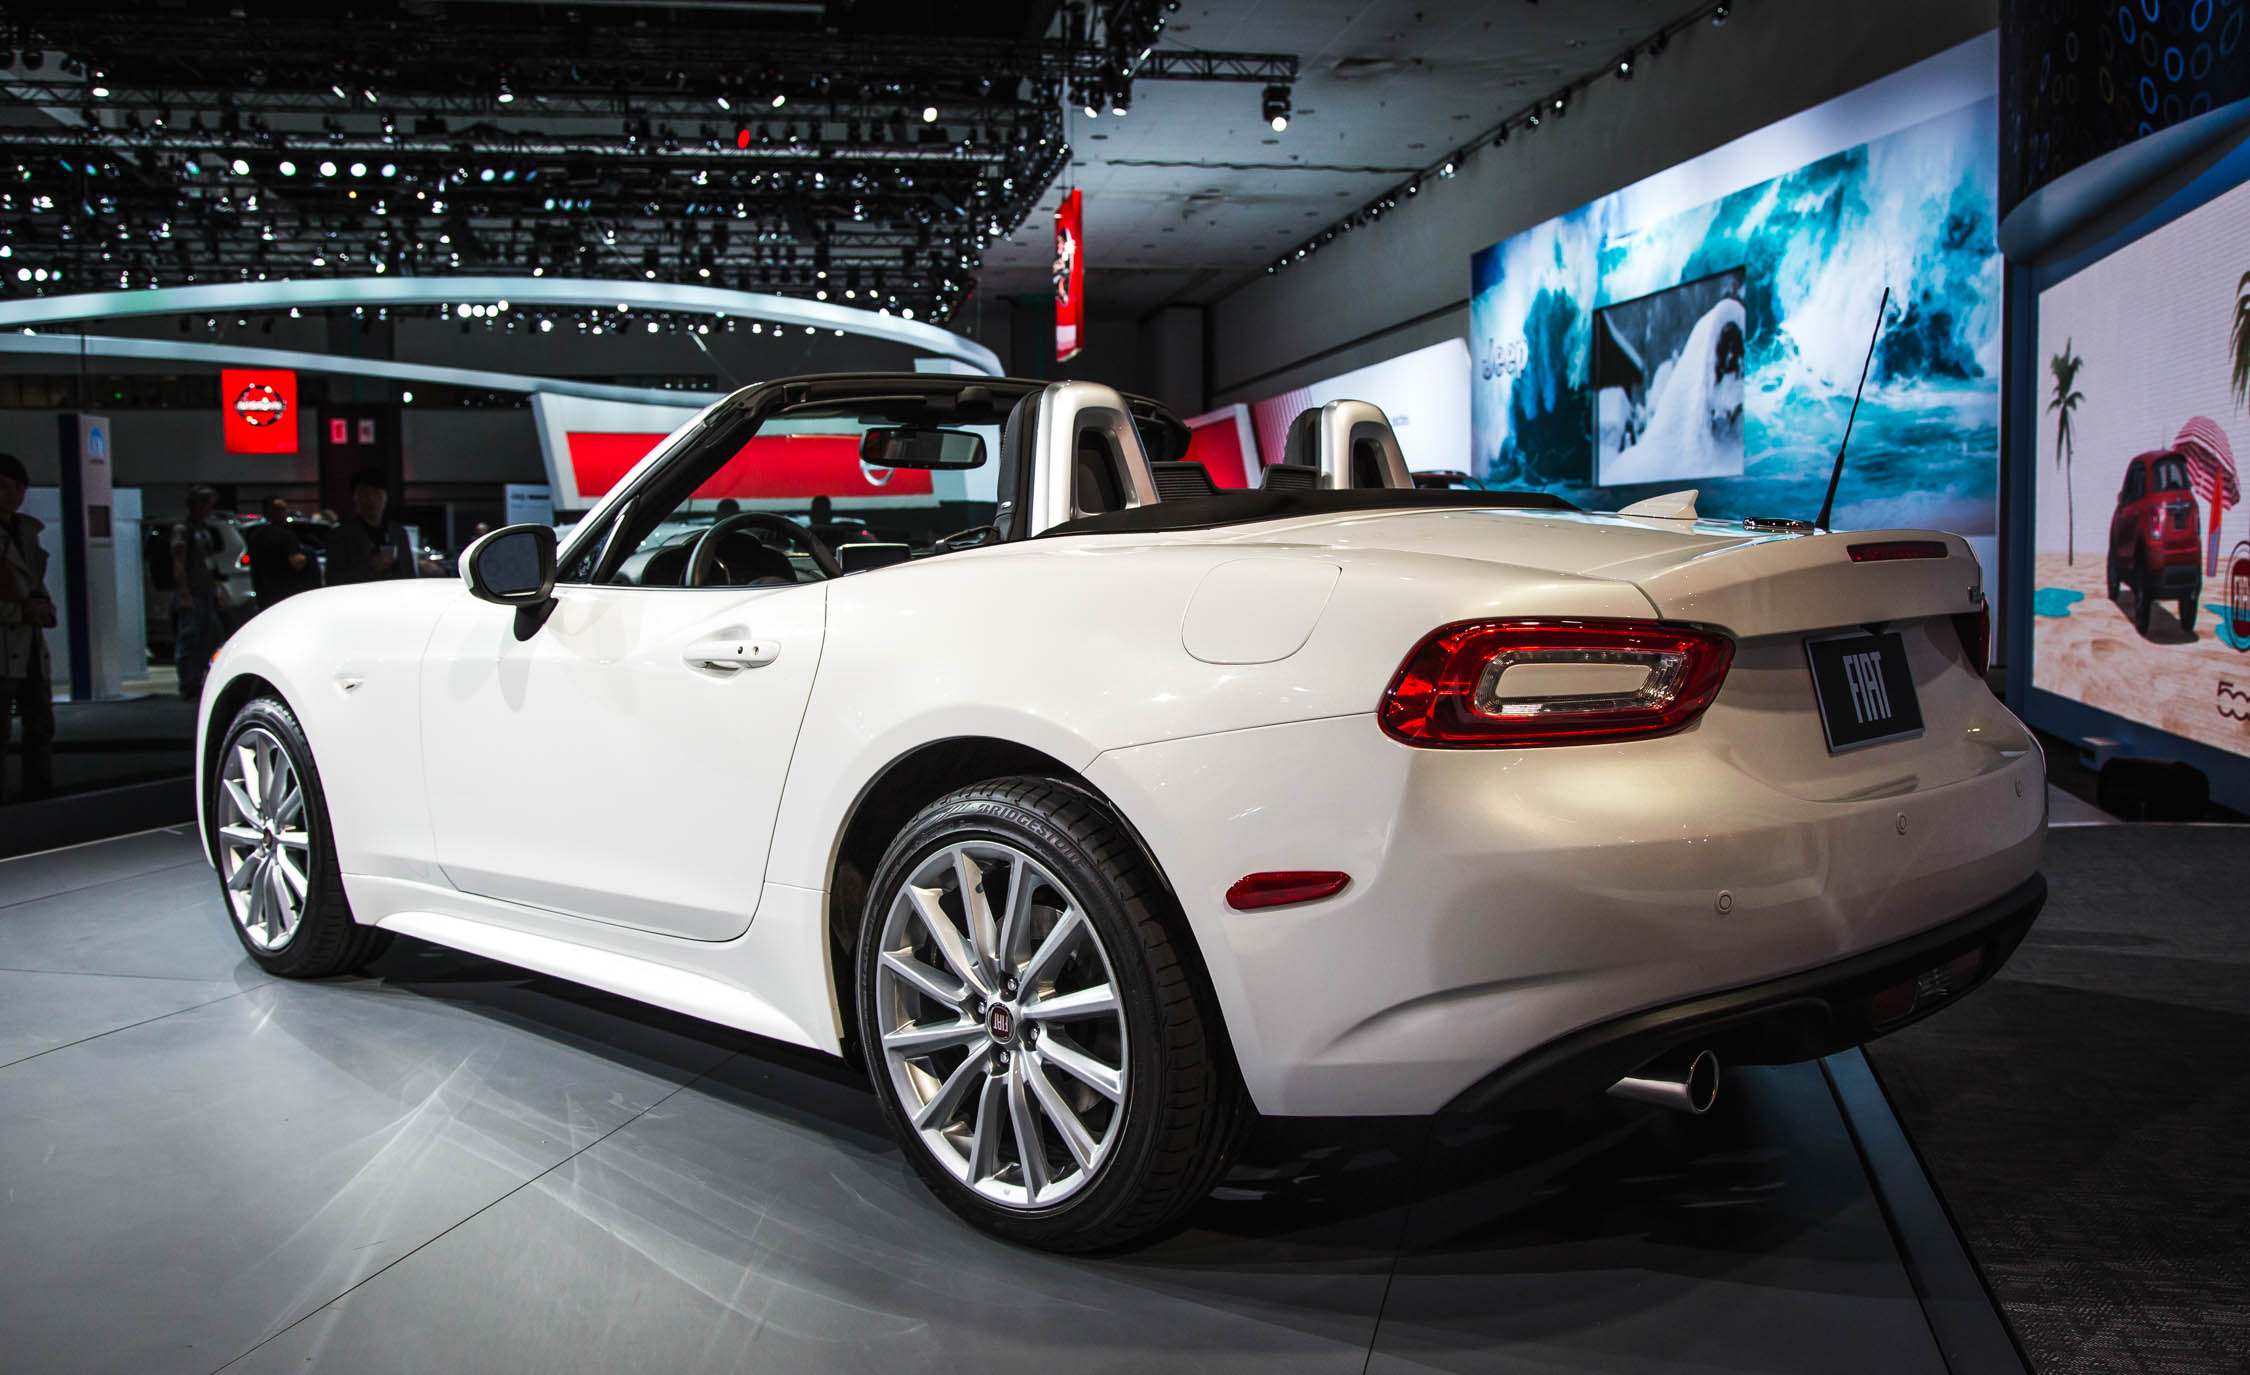 2017 Fiat 124 Spider White Preview (Photo 23 of 23)